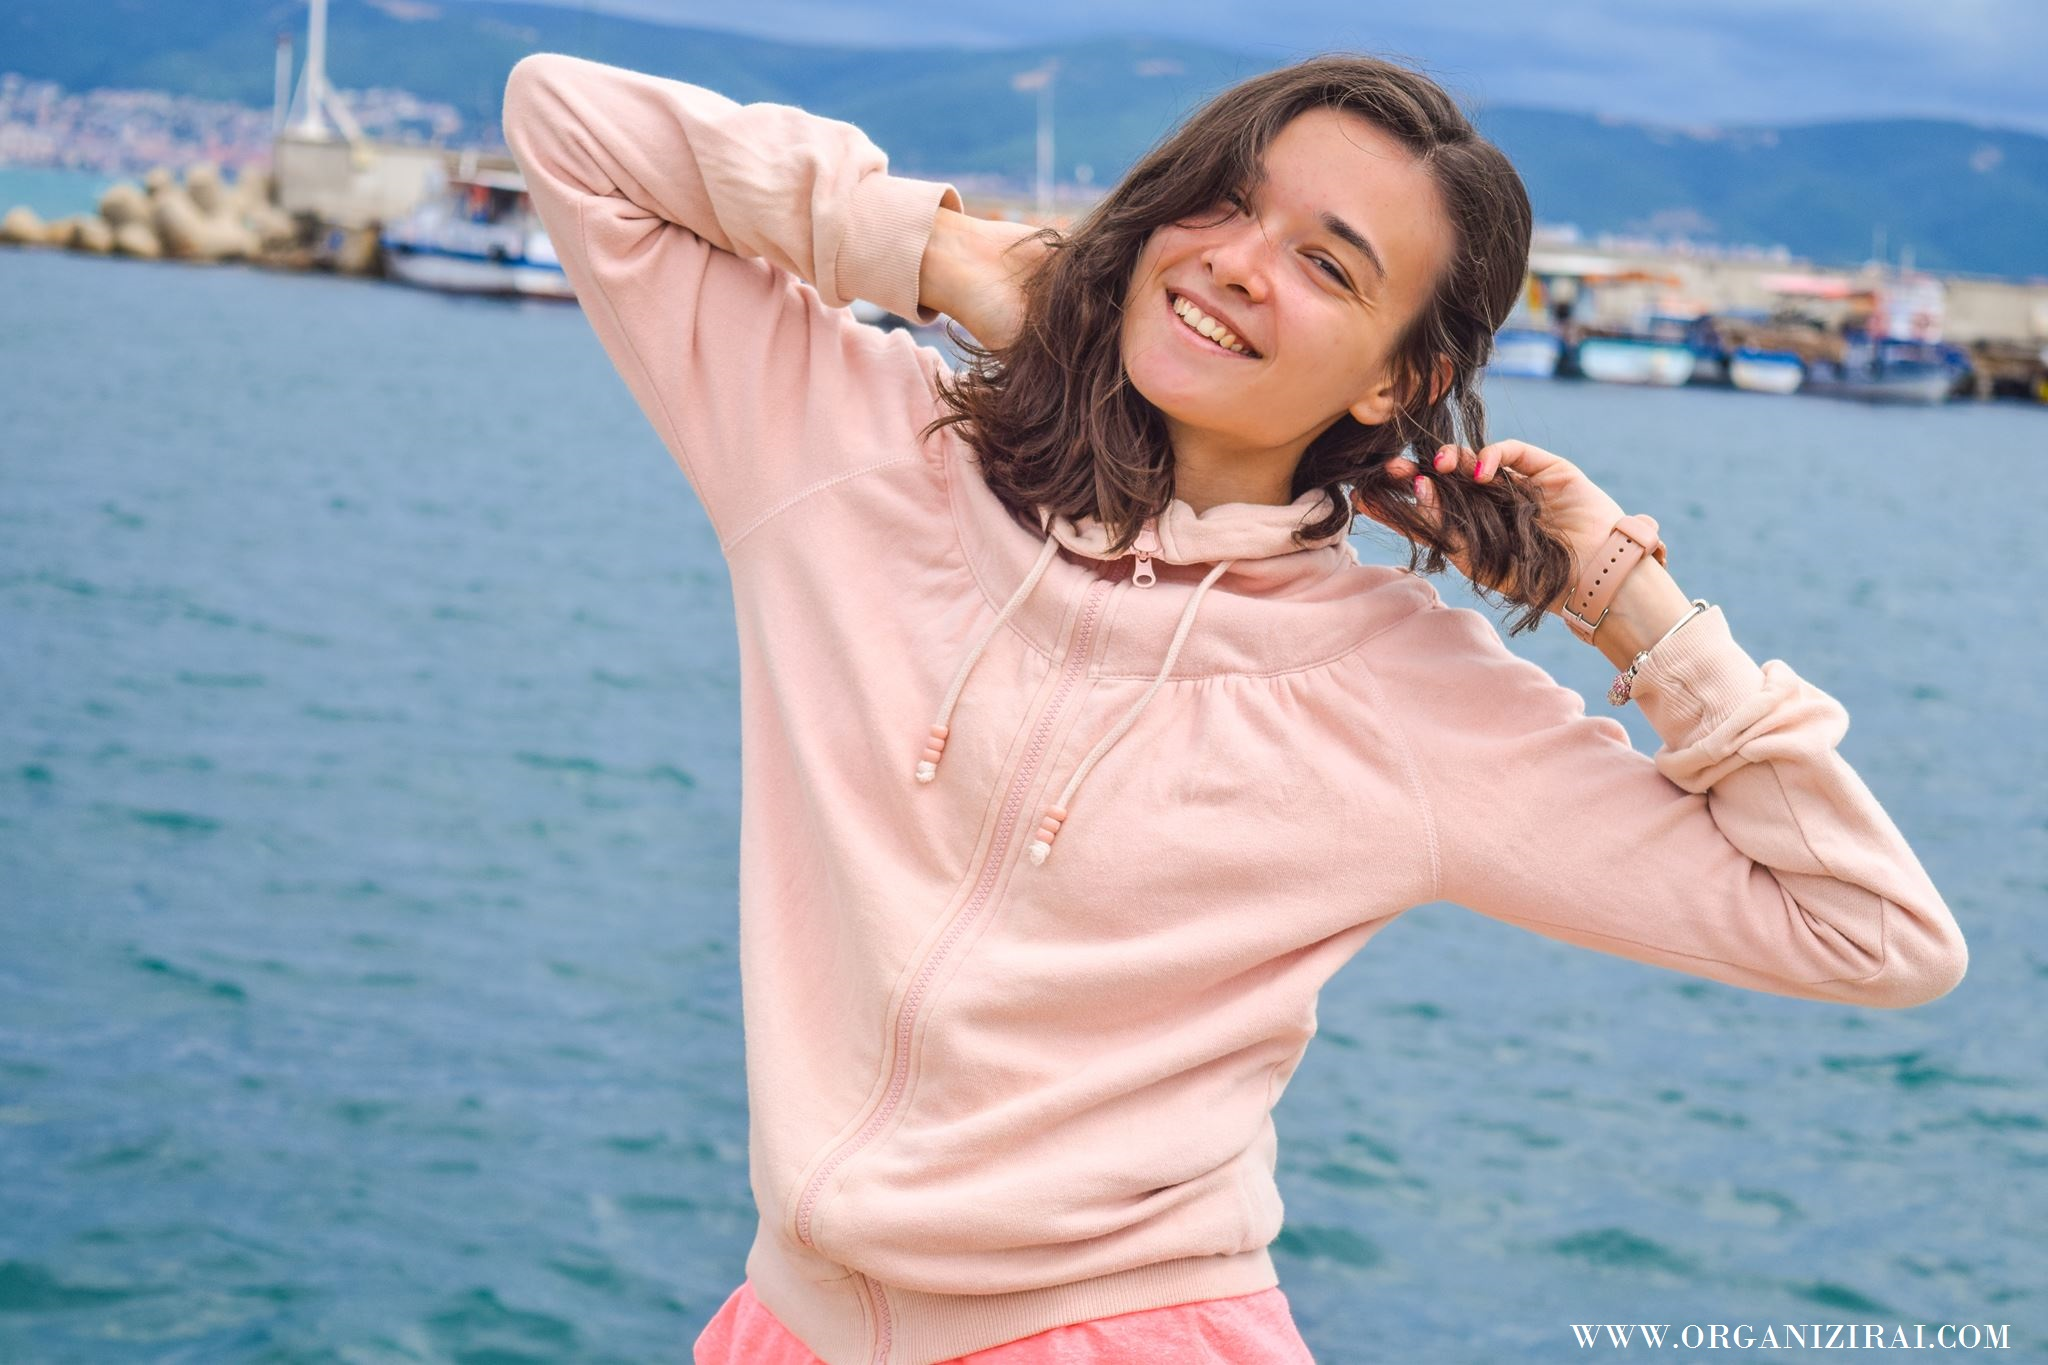 BOAT_SEA-VIBES-VIBRATION-SUMMER-PINK-HOODIE-INSPIRATION-BEST-LIFESTYLE-BLOGS-BULGARIAN-BLOGGERS-ORGANIZIRAI.COM17